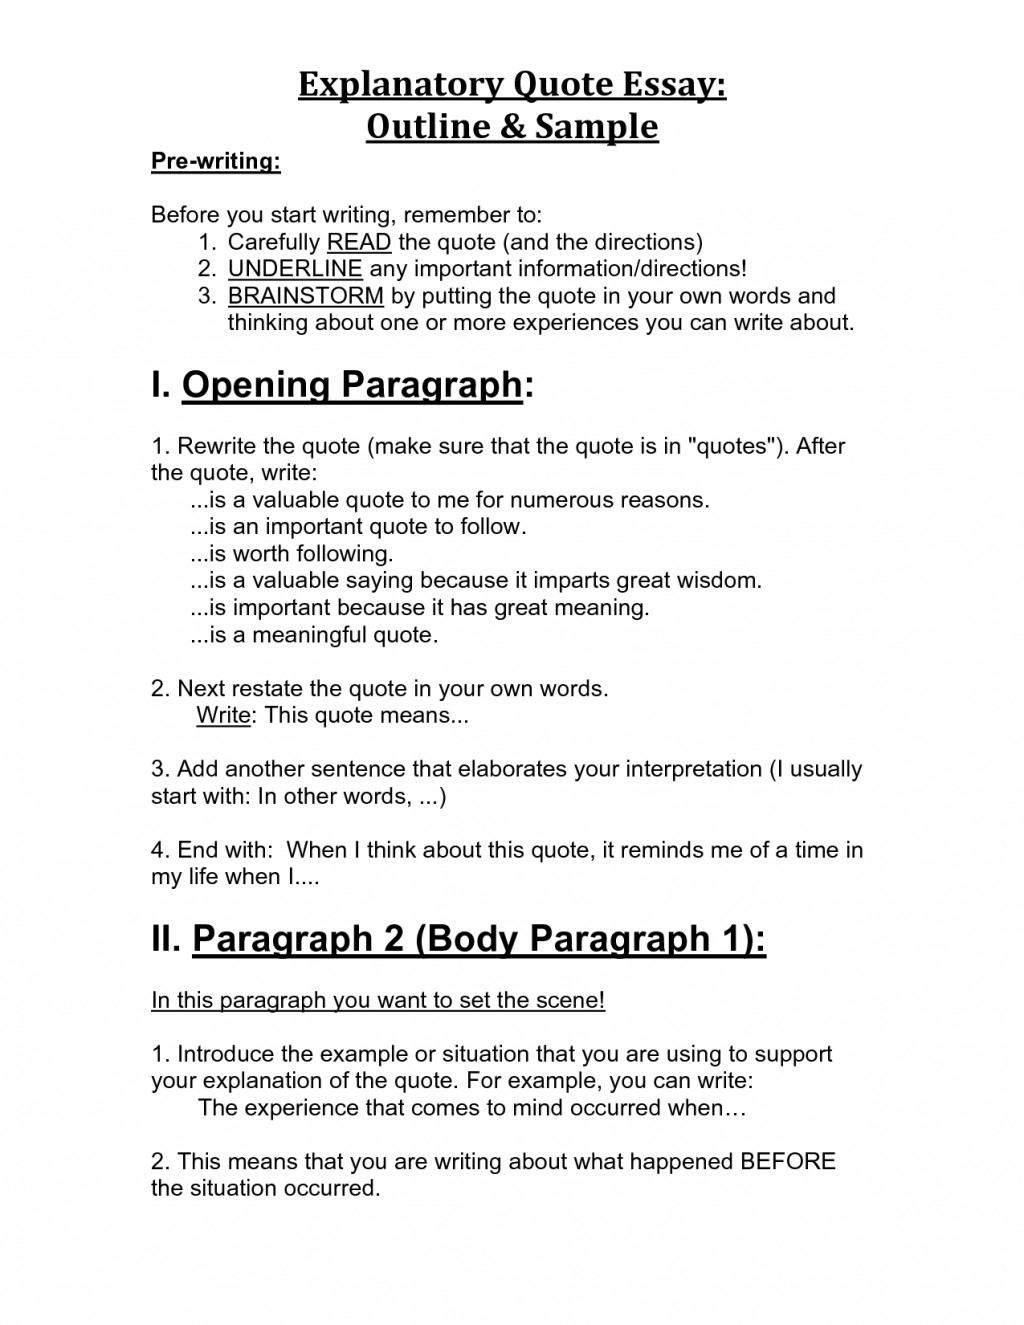 022 Explanation Essay Expository Format High School Common Core Explanatory Of Informativeexplanatory Quote Outliness Informative For Middle What Is An Outstanding Essay/example The Purpose Should Include Large